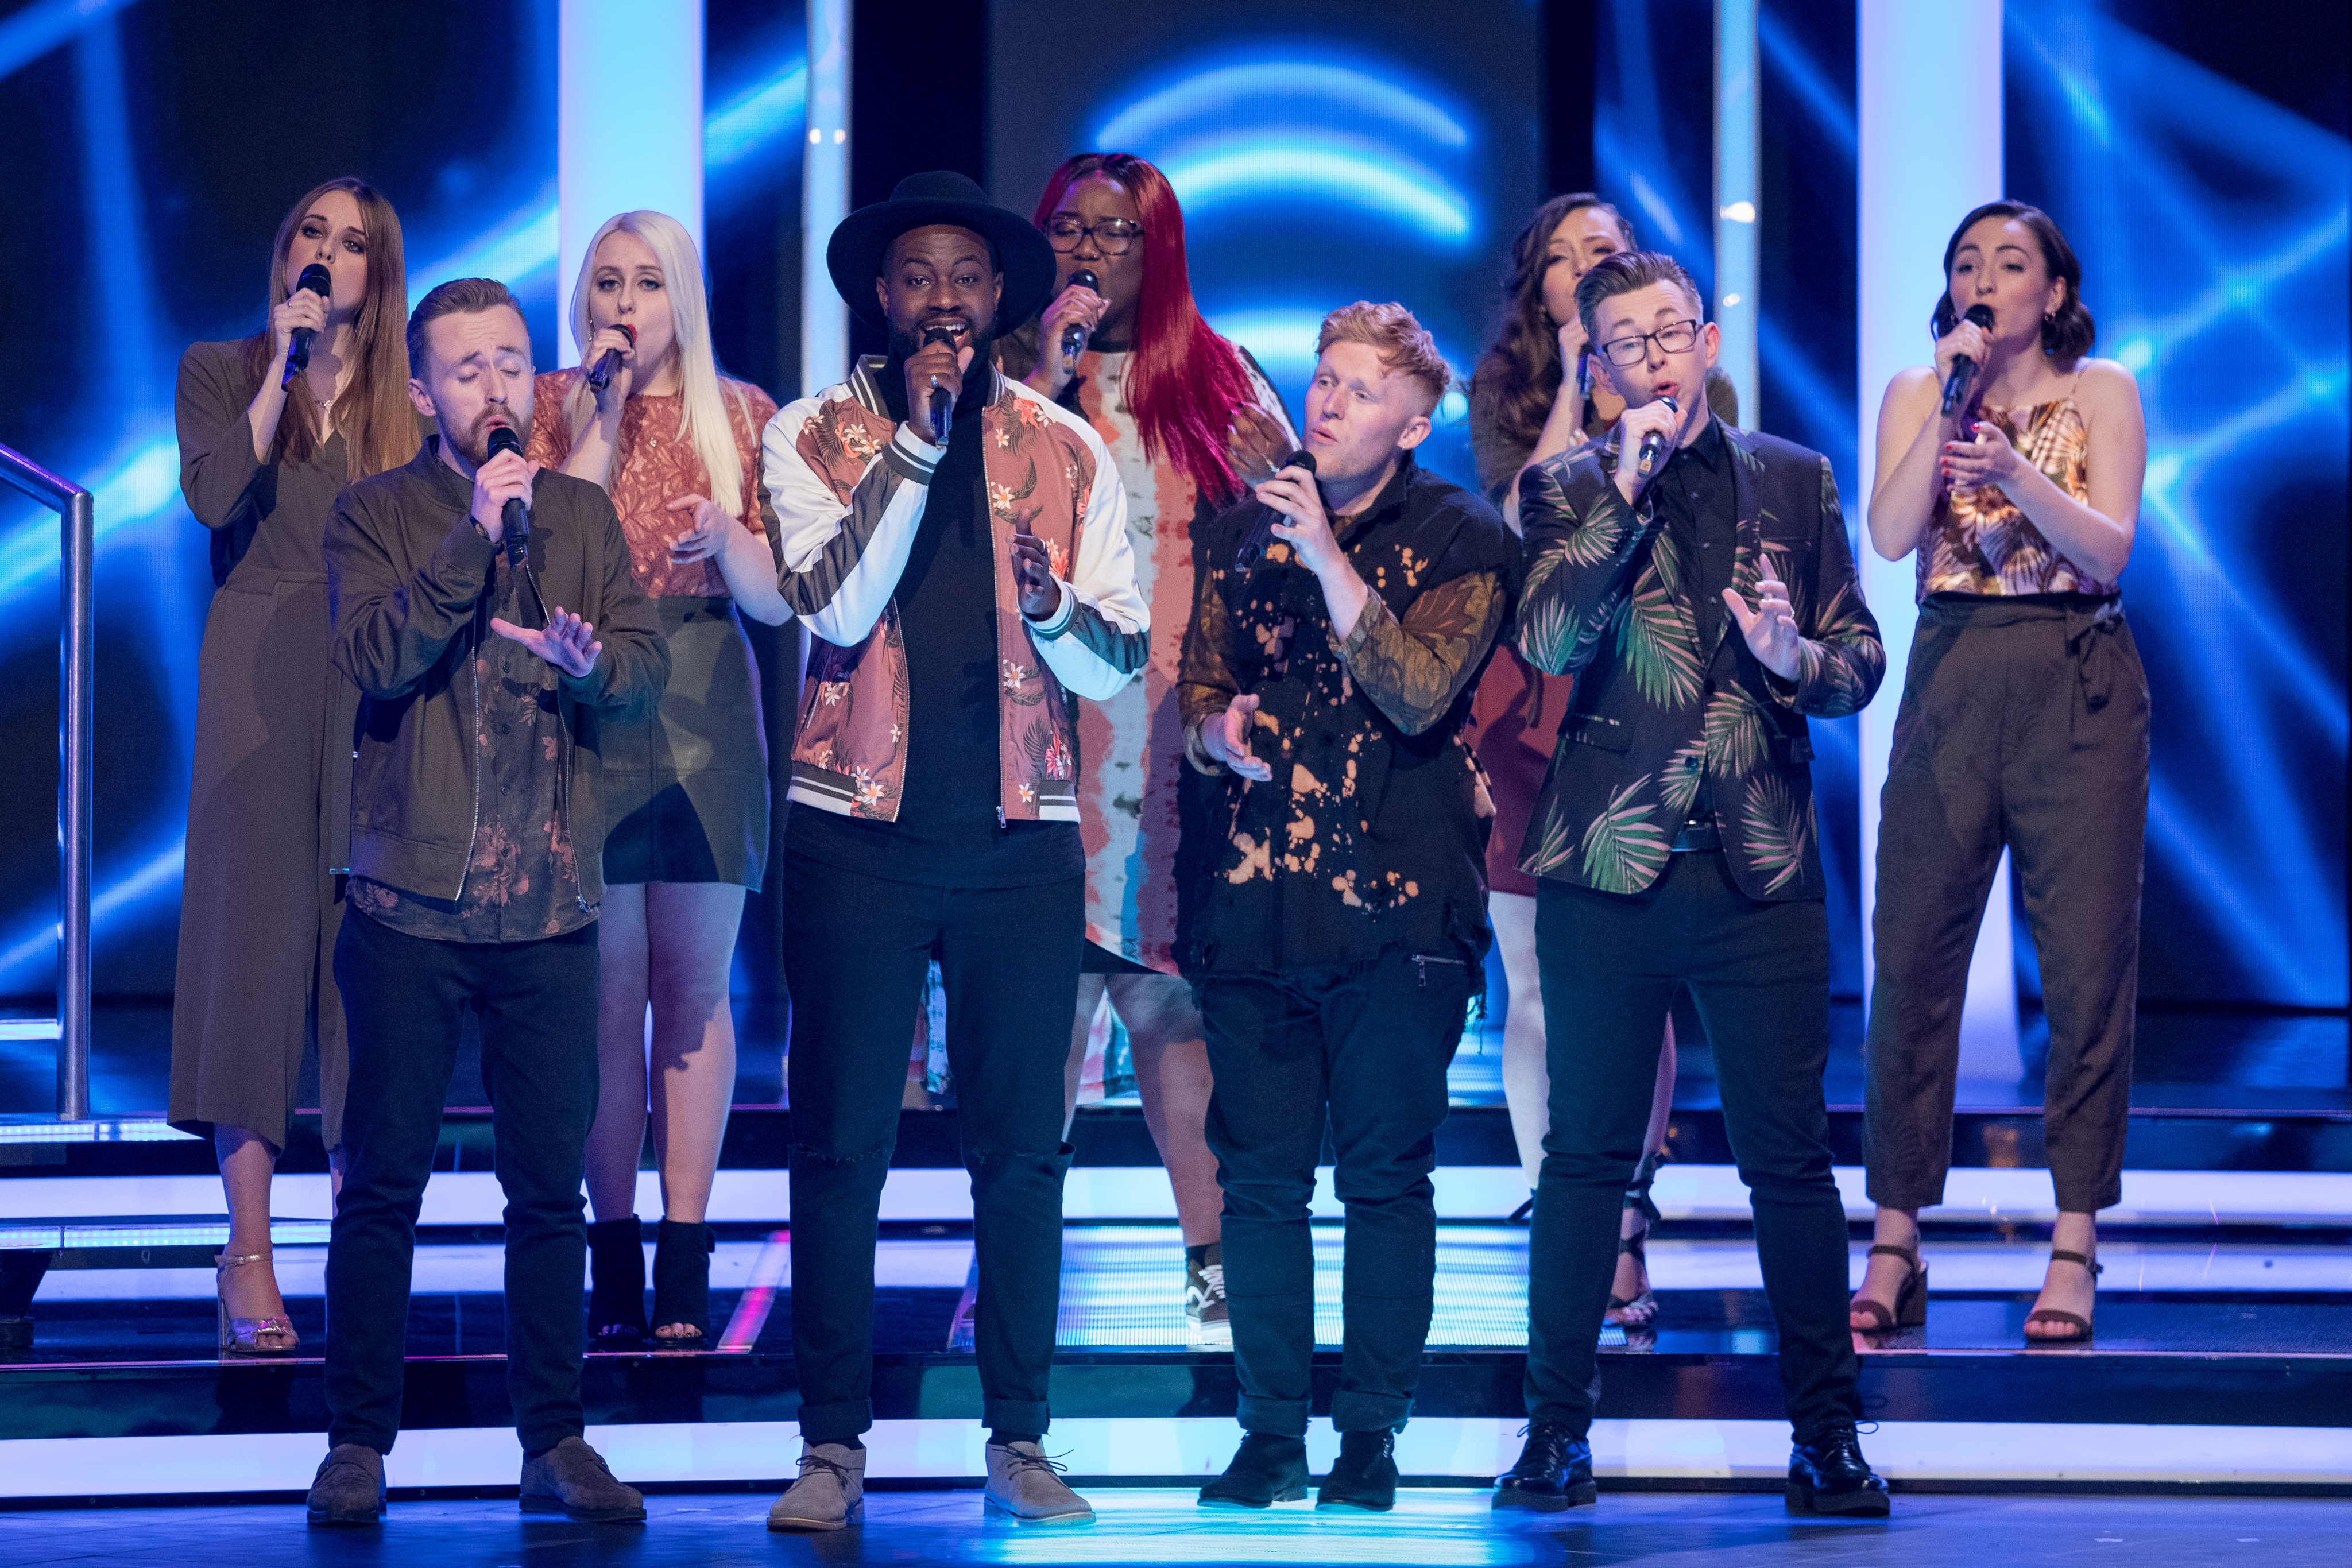 Six choirs to compete in pitch battle final shropshire star leeds contemporary singers bbc fandeluxe Ebook collections